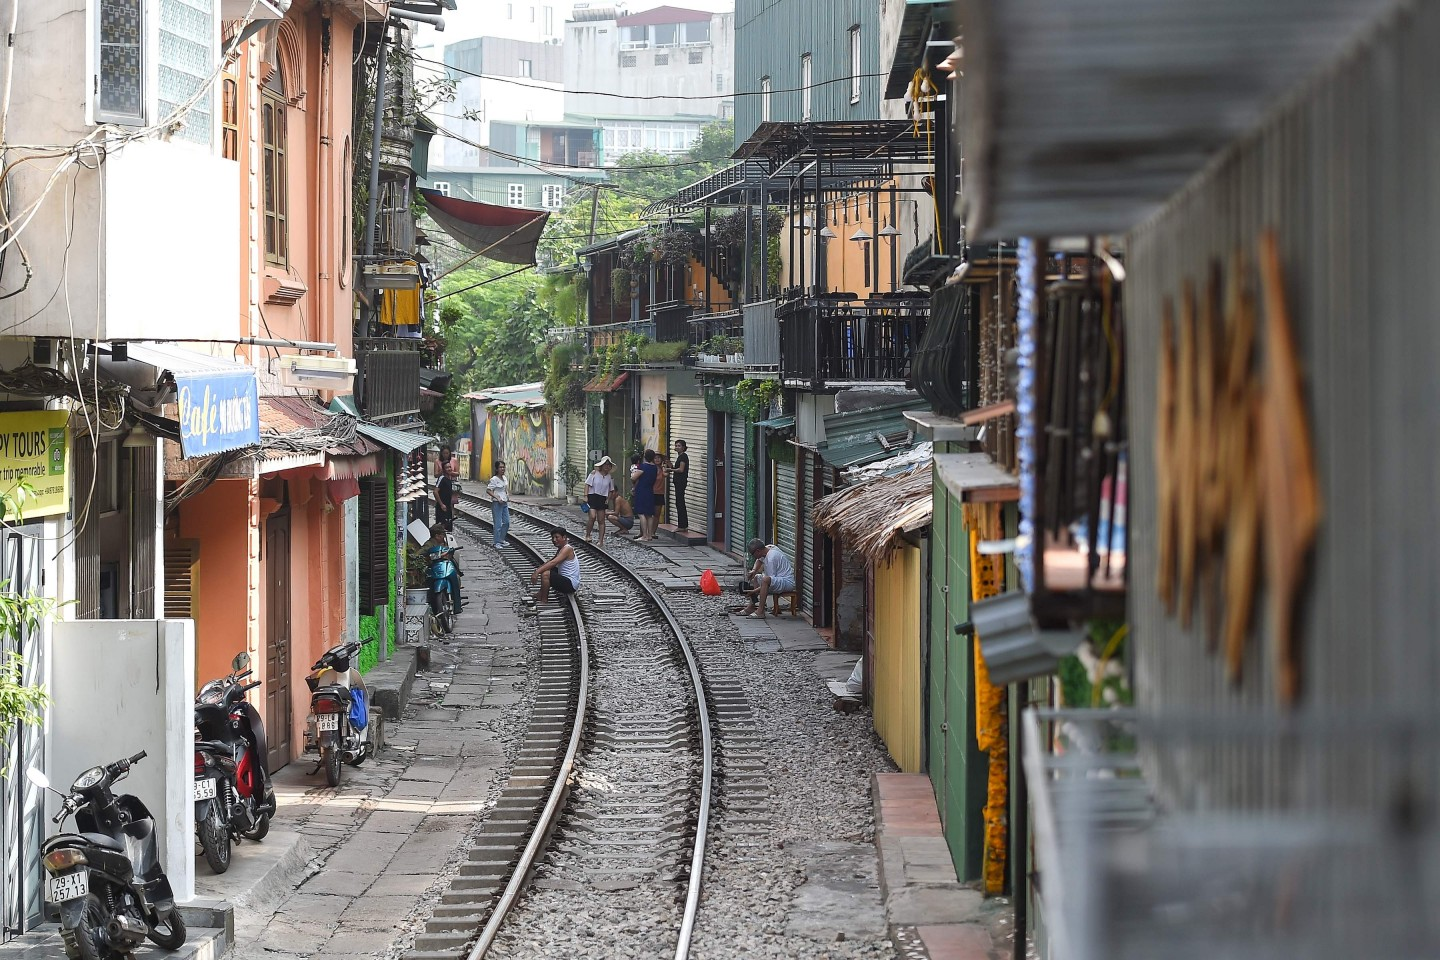 """Vietnam has a seemingly insatiable appetite for domestic infrastructure investment. A resident sits on Hanoi's popular train street on October 10, 2019 following a municipal authorities order to deal with cafes and """"ensure safety"""" on the railway track. (Photo by Nhac NGUYEN / AFP)"""